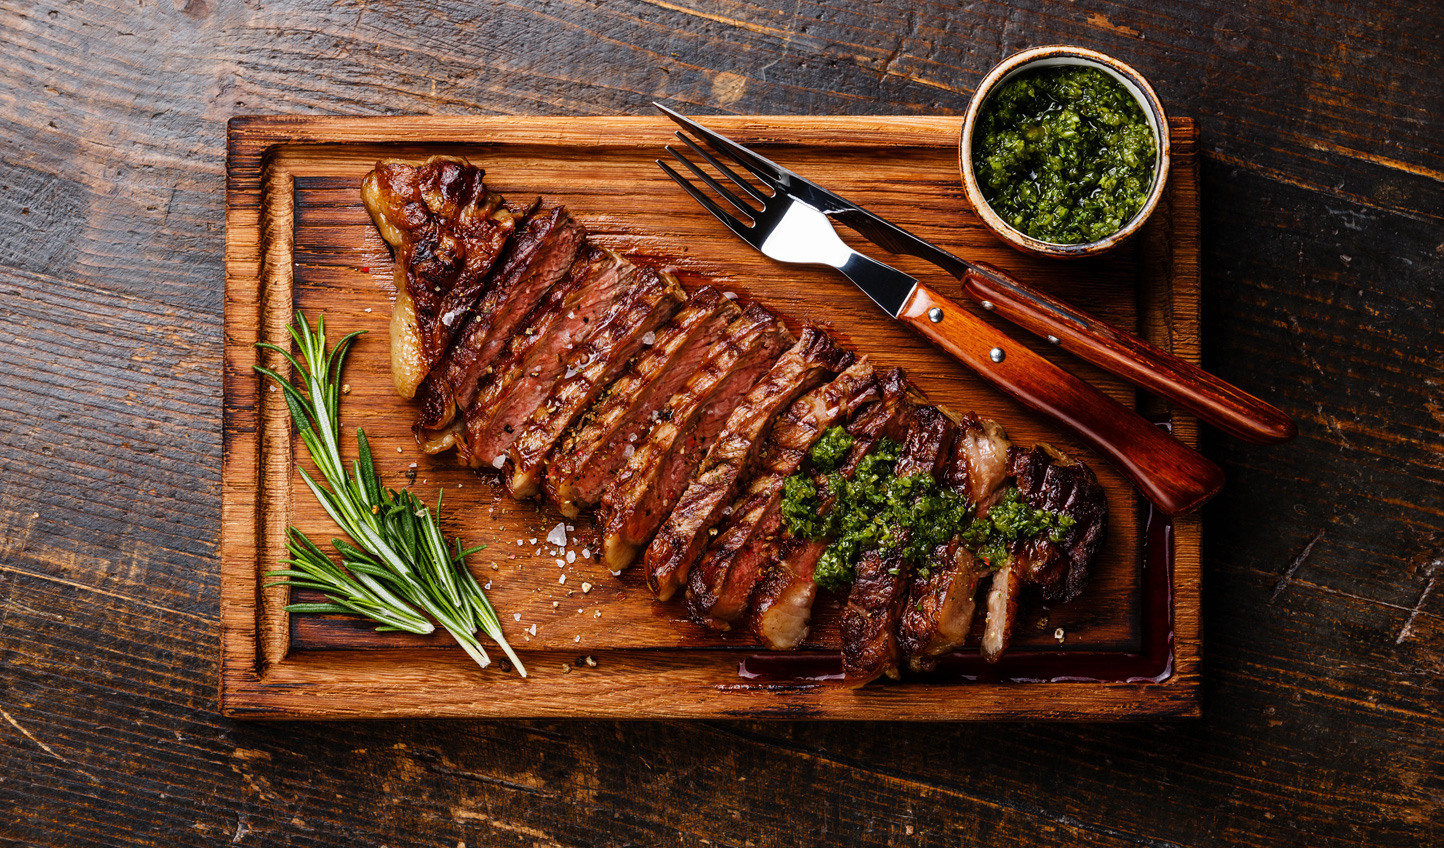 Indulge in perfectly grilled steaks